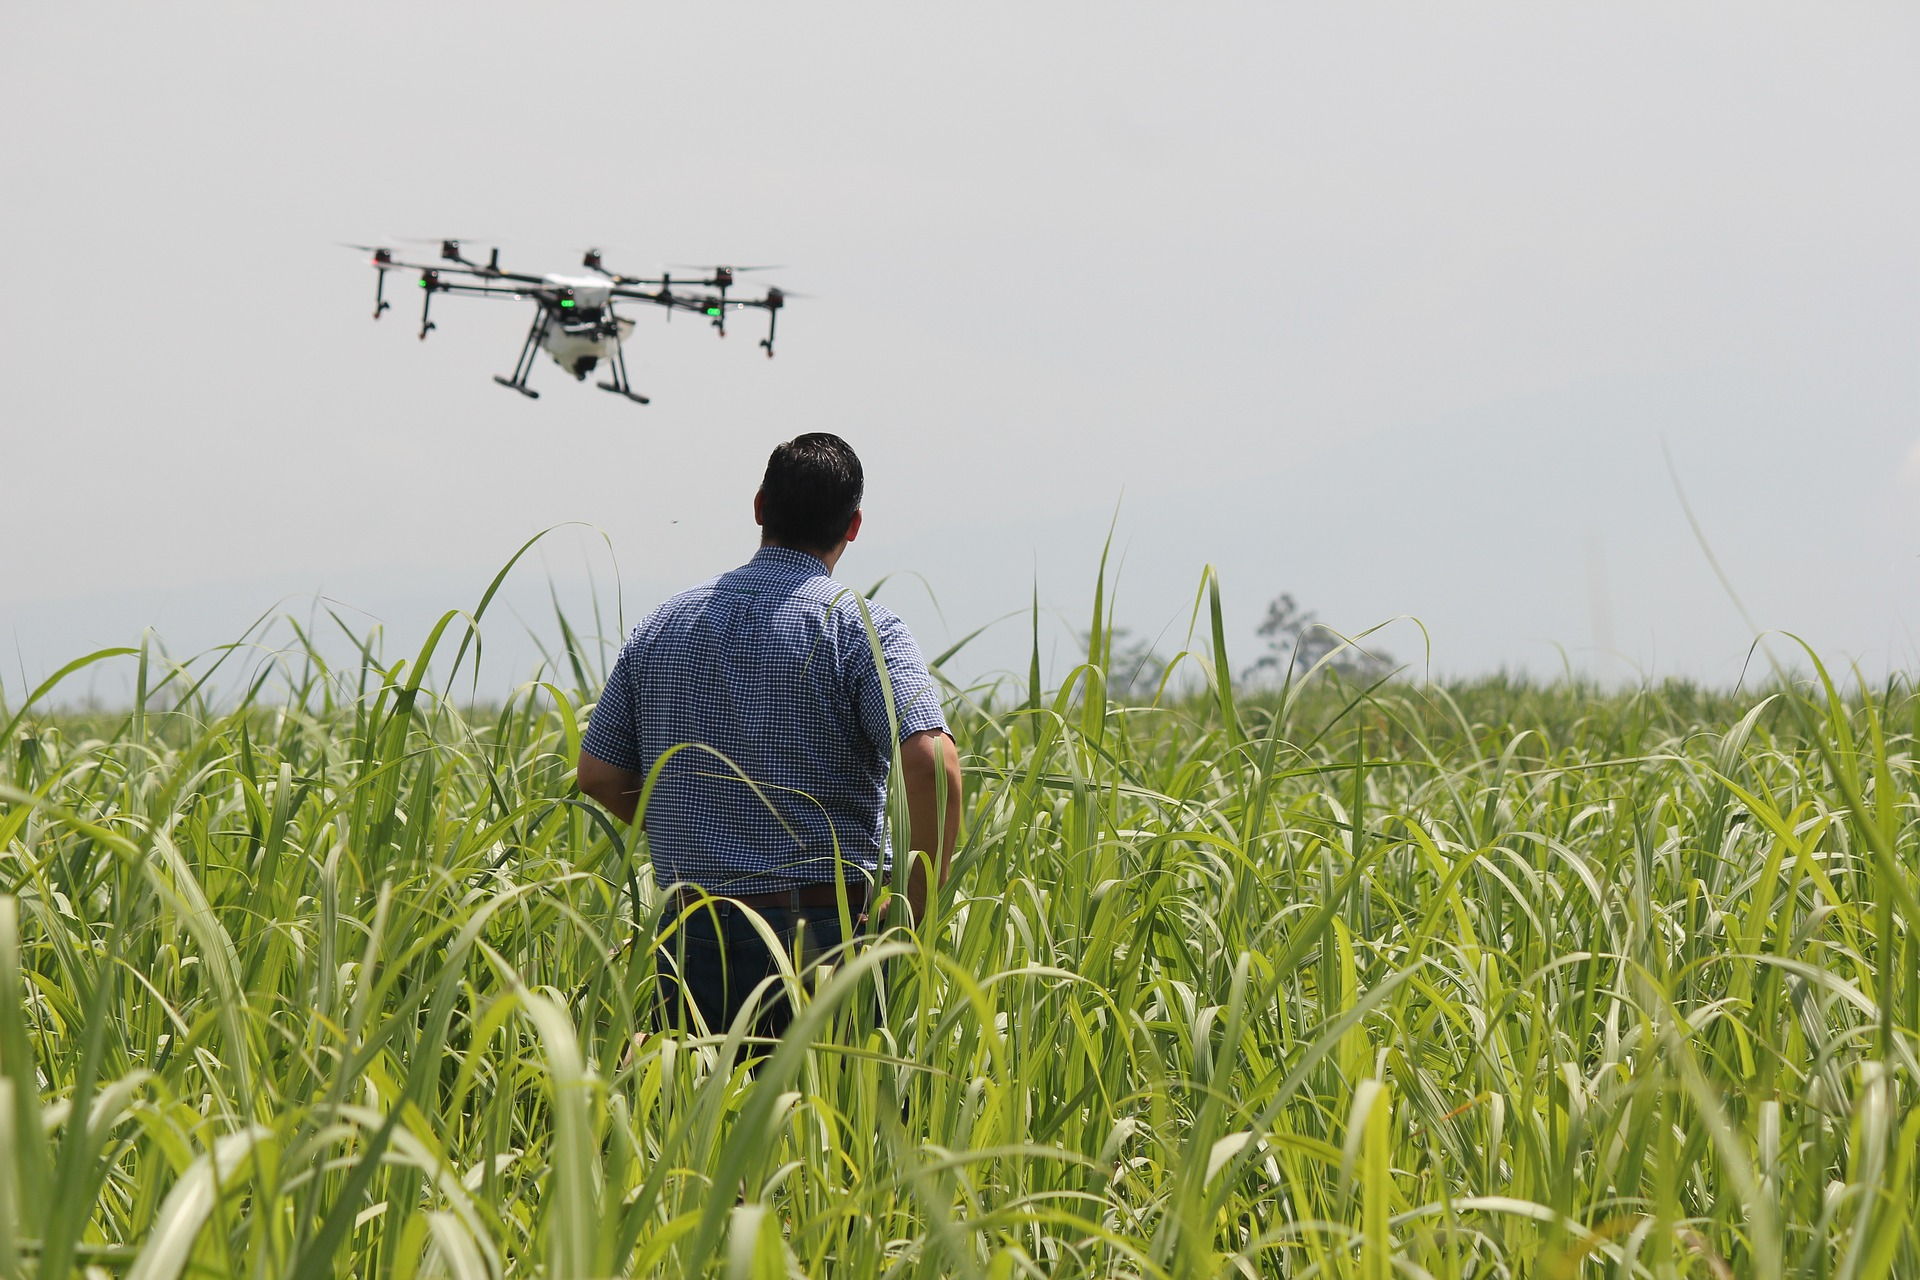 How to Find Work in the Drone Industry: The Growing